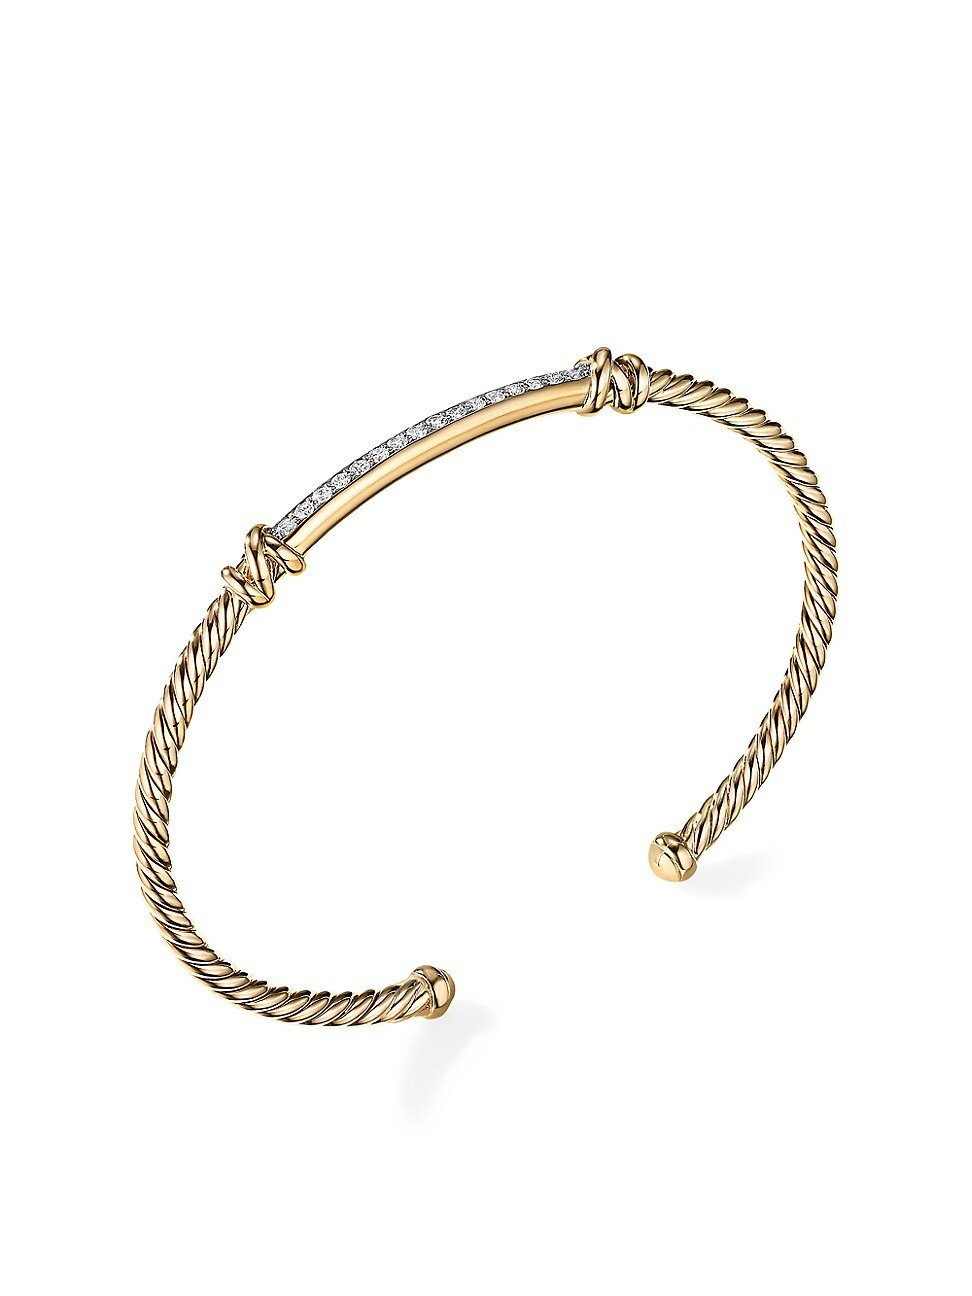 David Yurman WOMEN'S HELENA 2-STATION BRACELET IN 18K YELLOW GOLD WITH DIAMONDS